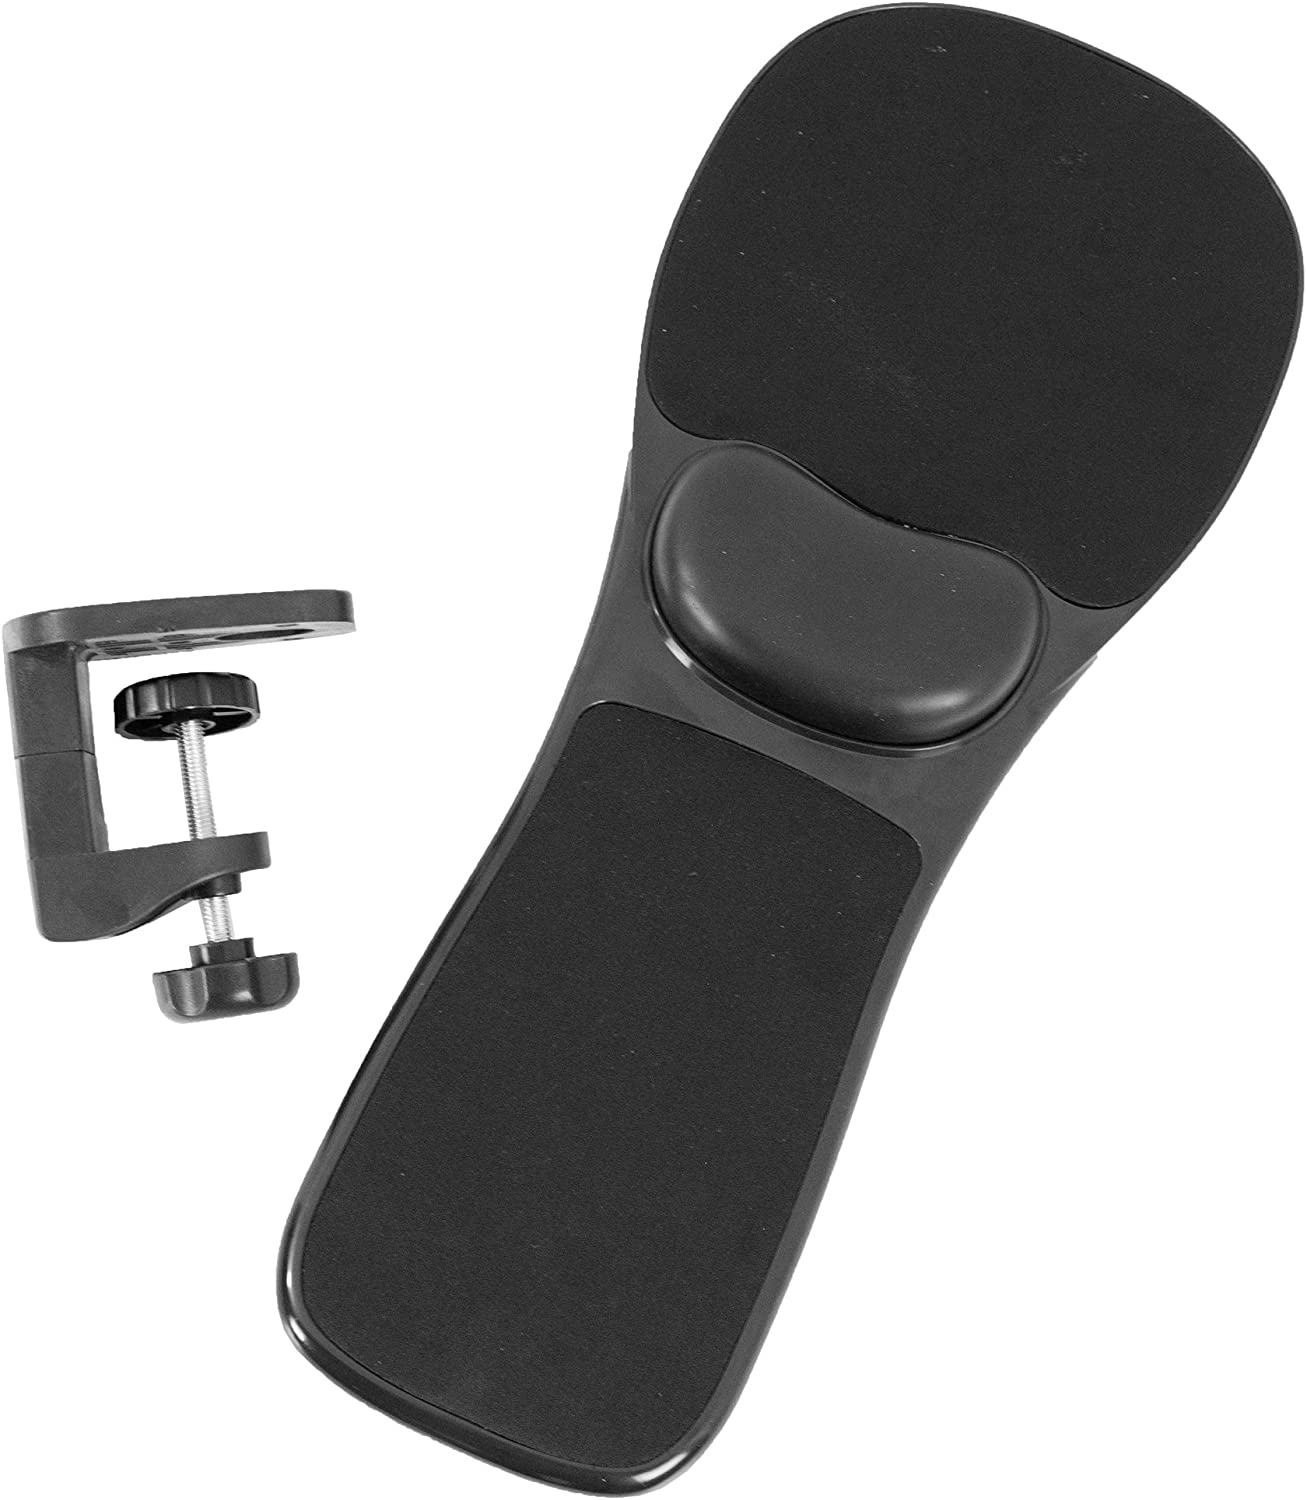 VIVO Black Universal Clamp-on Adjustable Arm Rest Mouse Pad with Wrist Cushion   Extension Platform Tray Attaches to Desk or Chair (MOUNT-MS02B)